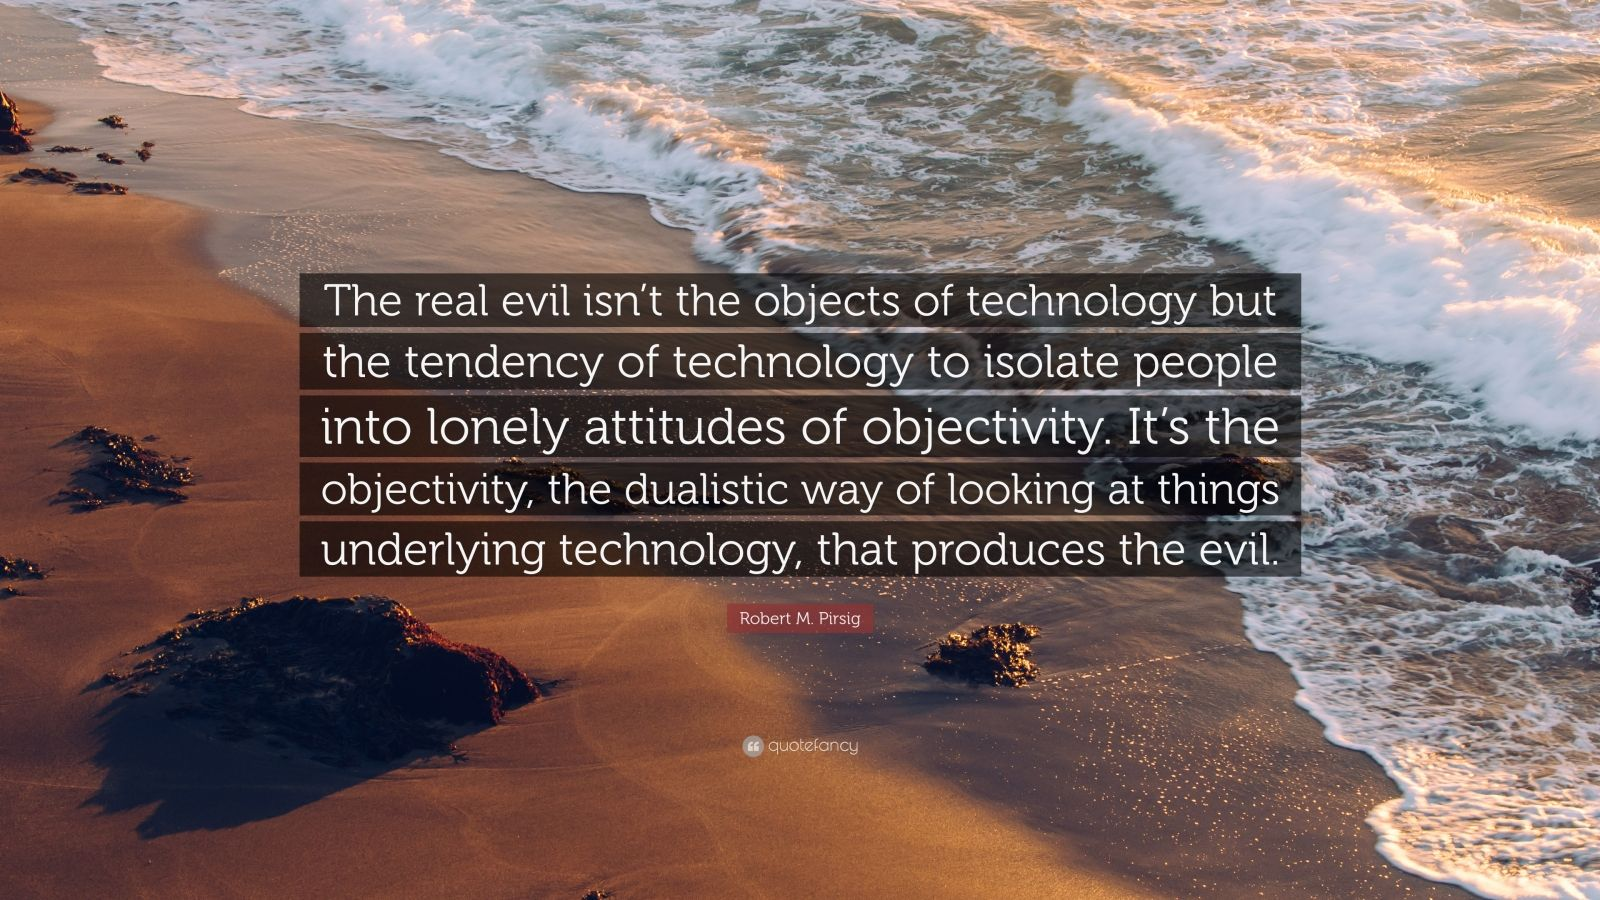 "Robert M. Pirsig Quote: ""The real evil isn't the objects of technology but the tendency of technology to isolate people into lonely attitudes of objectivity. It's the objectivity, the dualistic way of looking at things underlying technology, that produces the evil."""